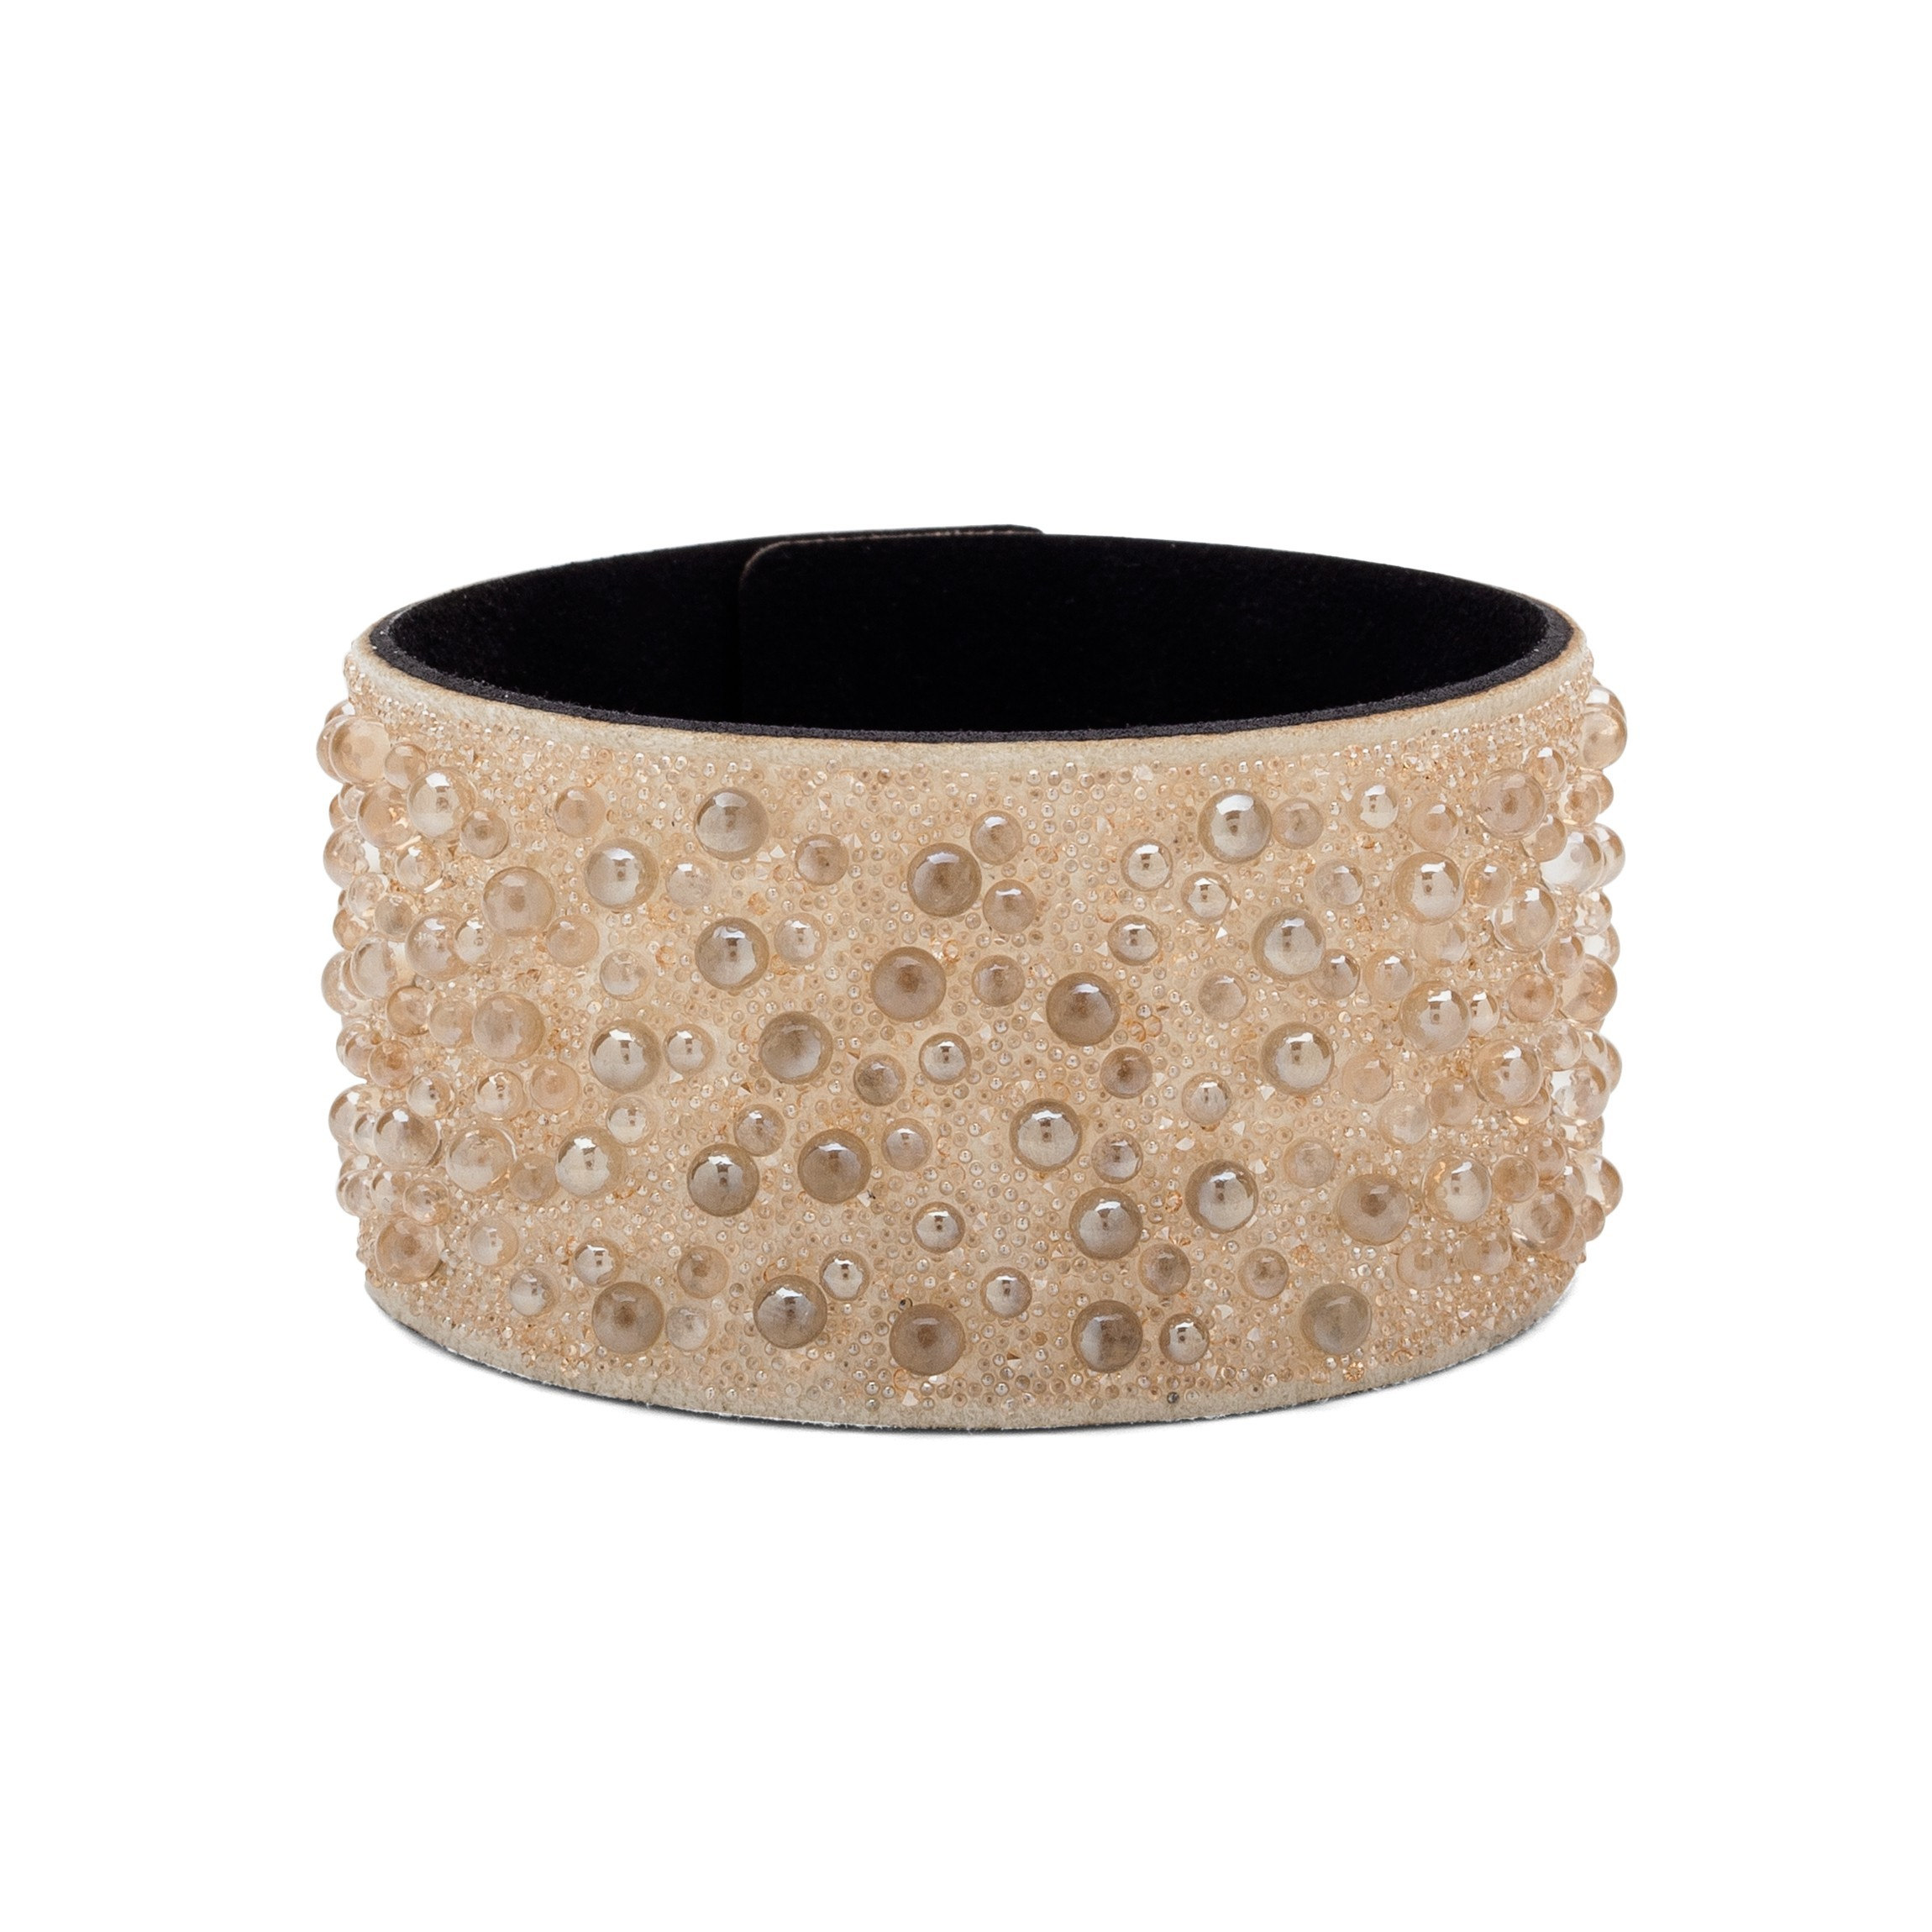 BRACELET WITH ALCANTARA AND SWAROVSKI CRY GALUCHAT STONES – MODEL 8